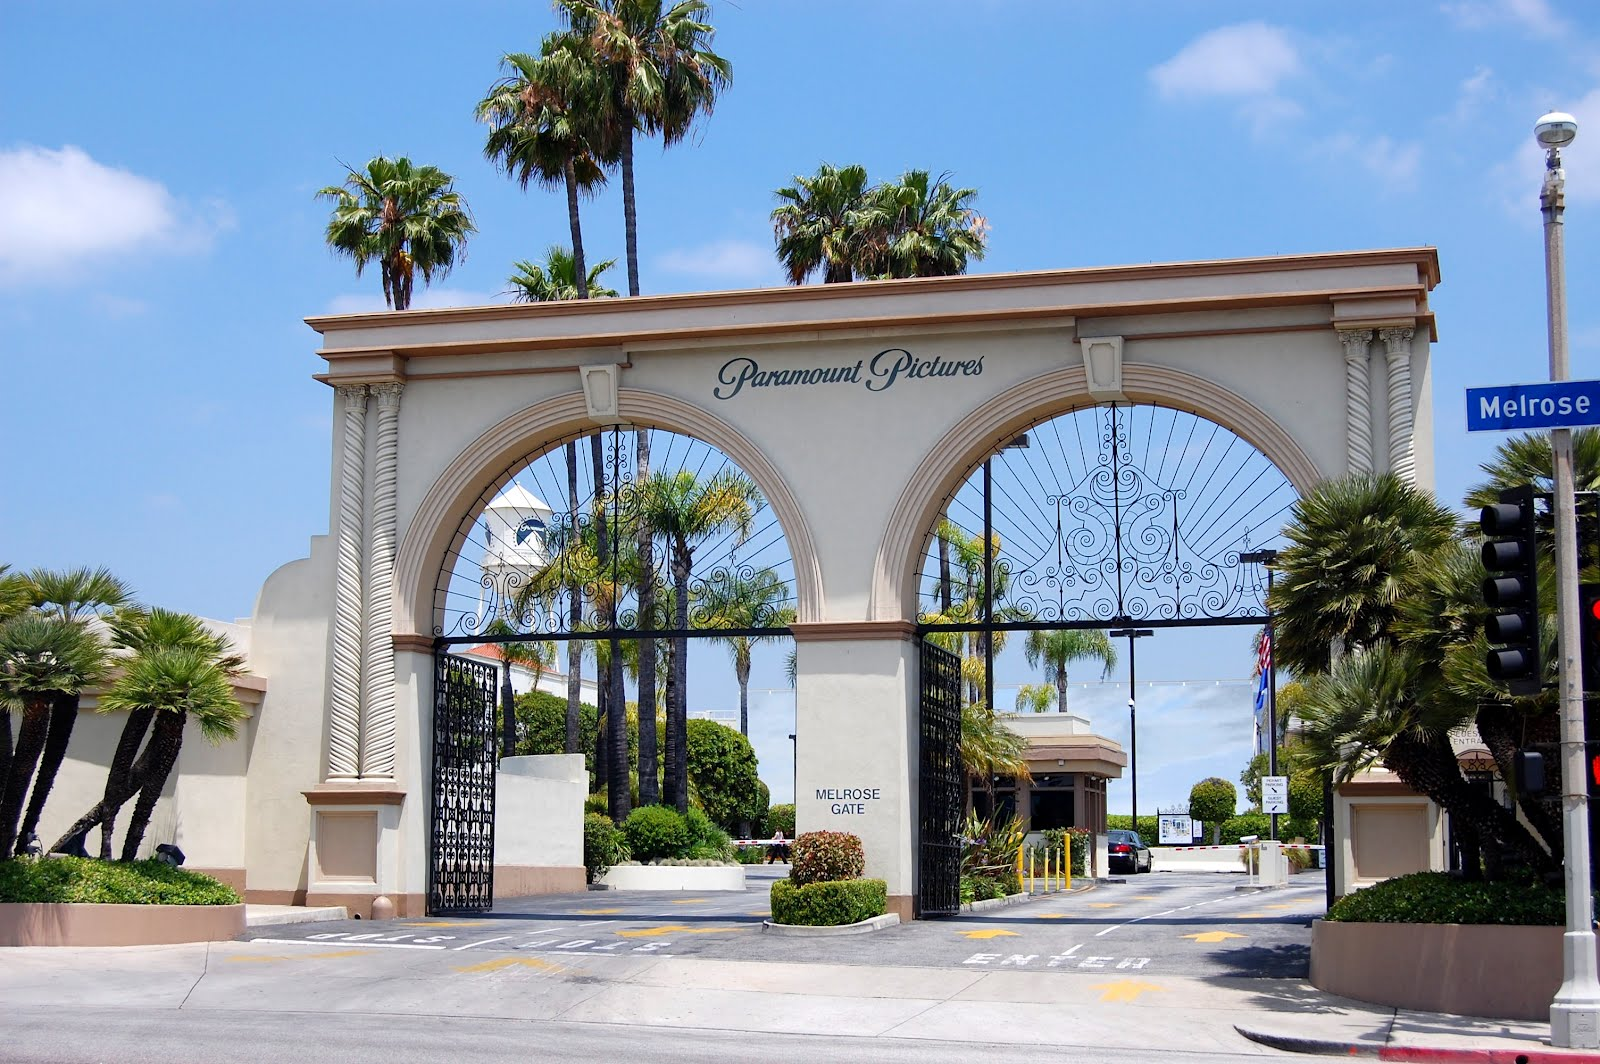 Paramount Studios   Things to do in Hollywood, Los Angeles   Paramount Studios Tour